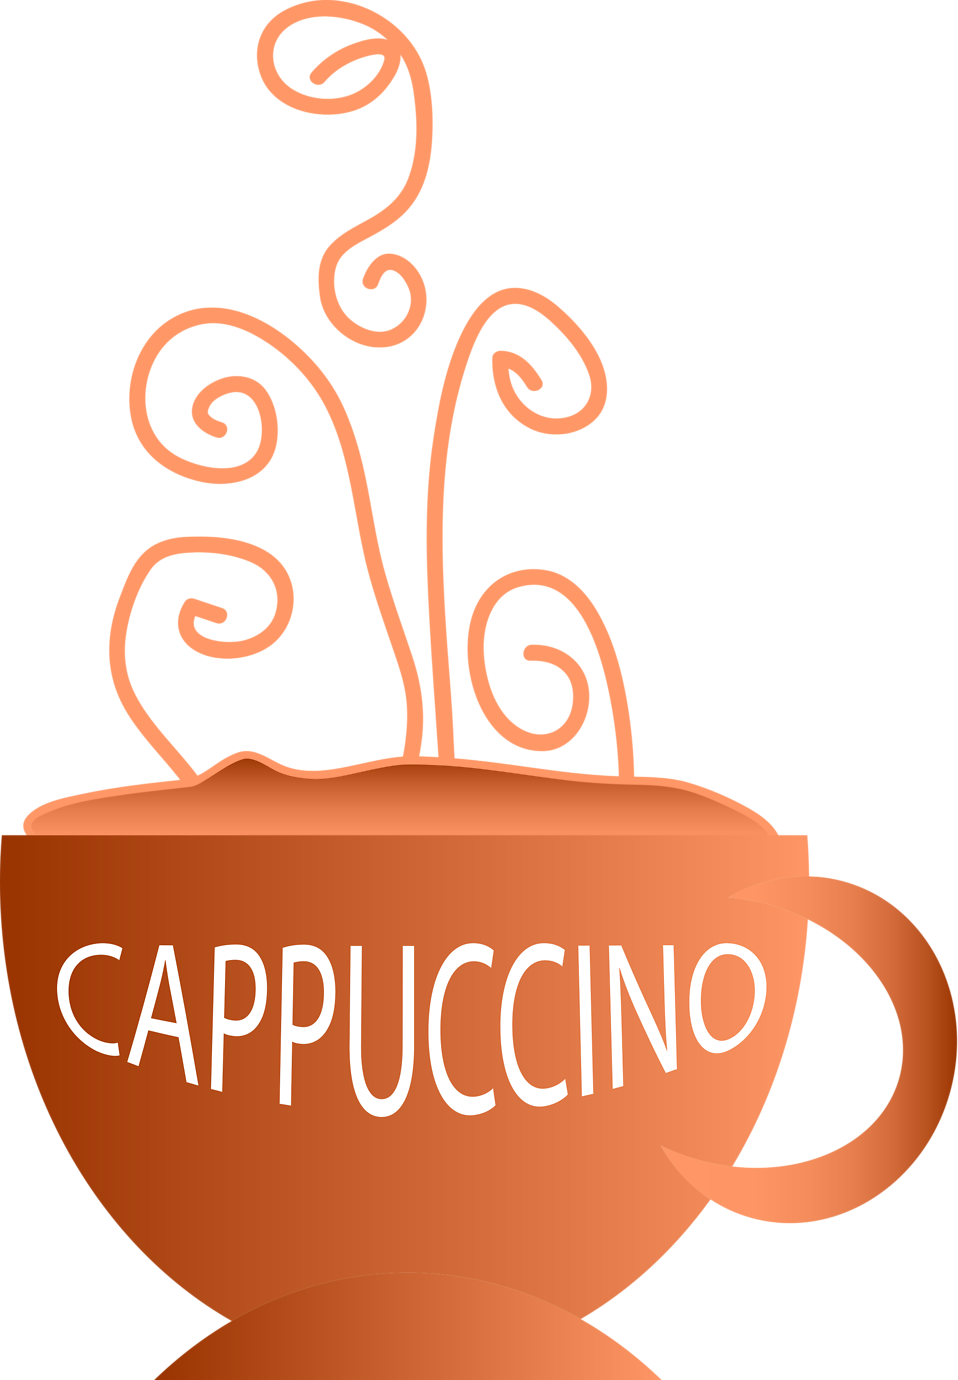 Free stock photo illustration. Clipart coffee cappuccino